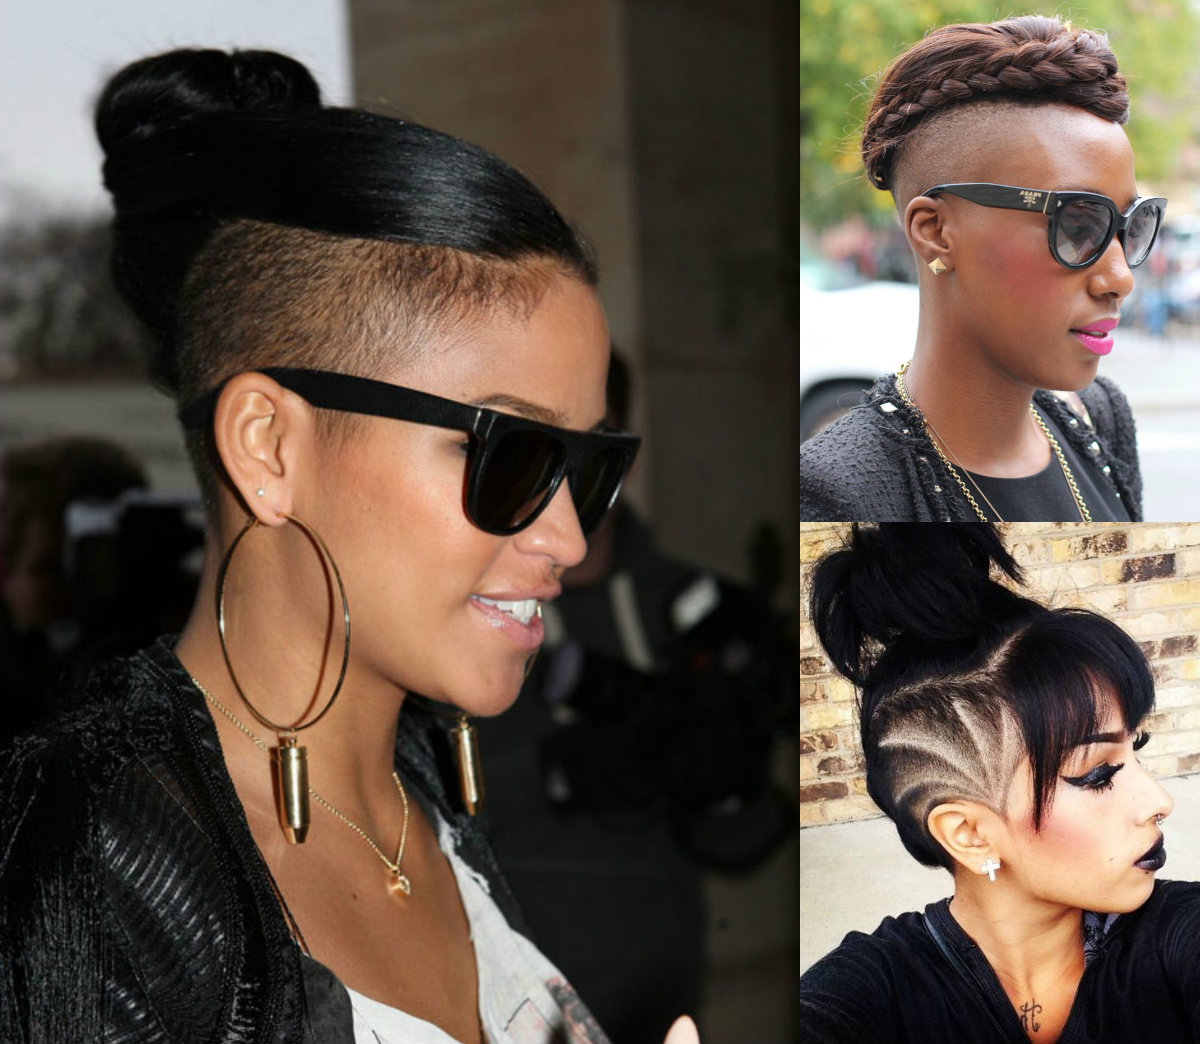 Current Medium Hairstyles With Shaved Sides For Women Regarding Updo Hairstyles For Half Shaved Hair (View 16 of 20)